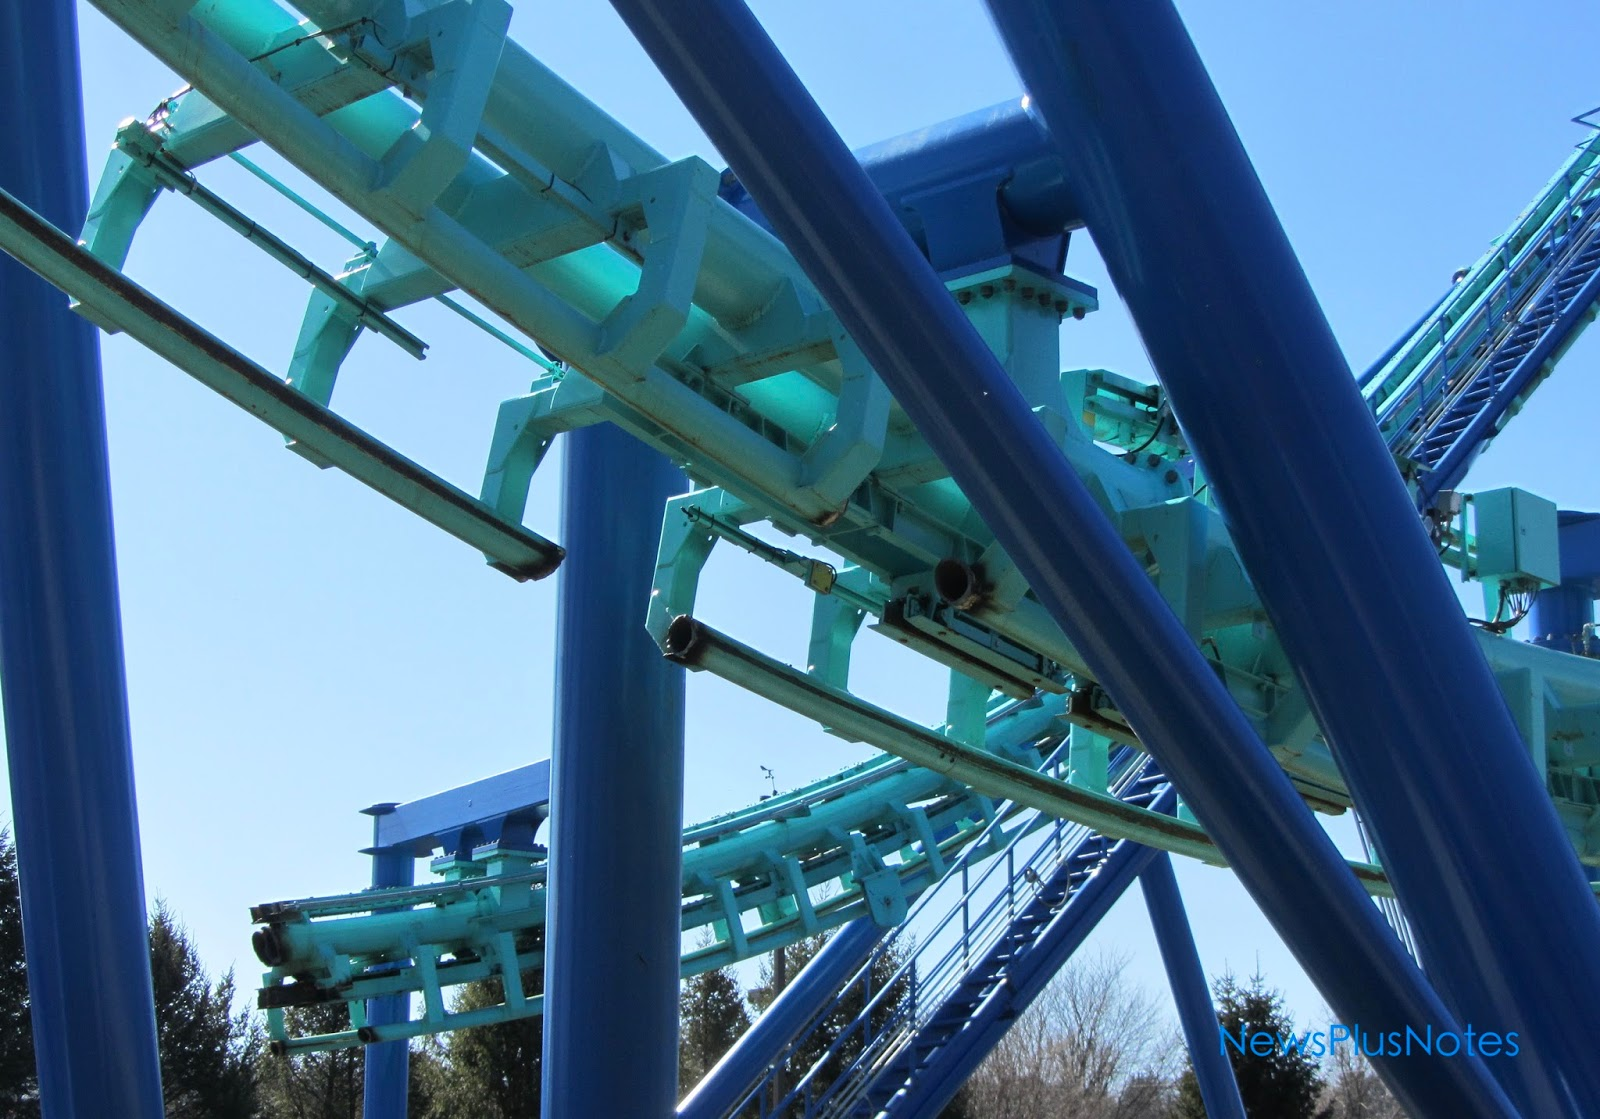 Newsplusnotes Exclusive Photos Of The Deconstruction Of Stinger At